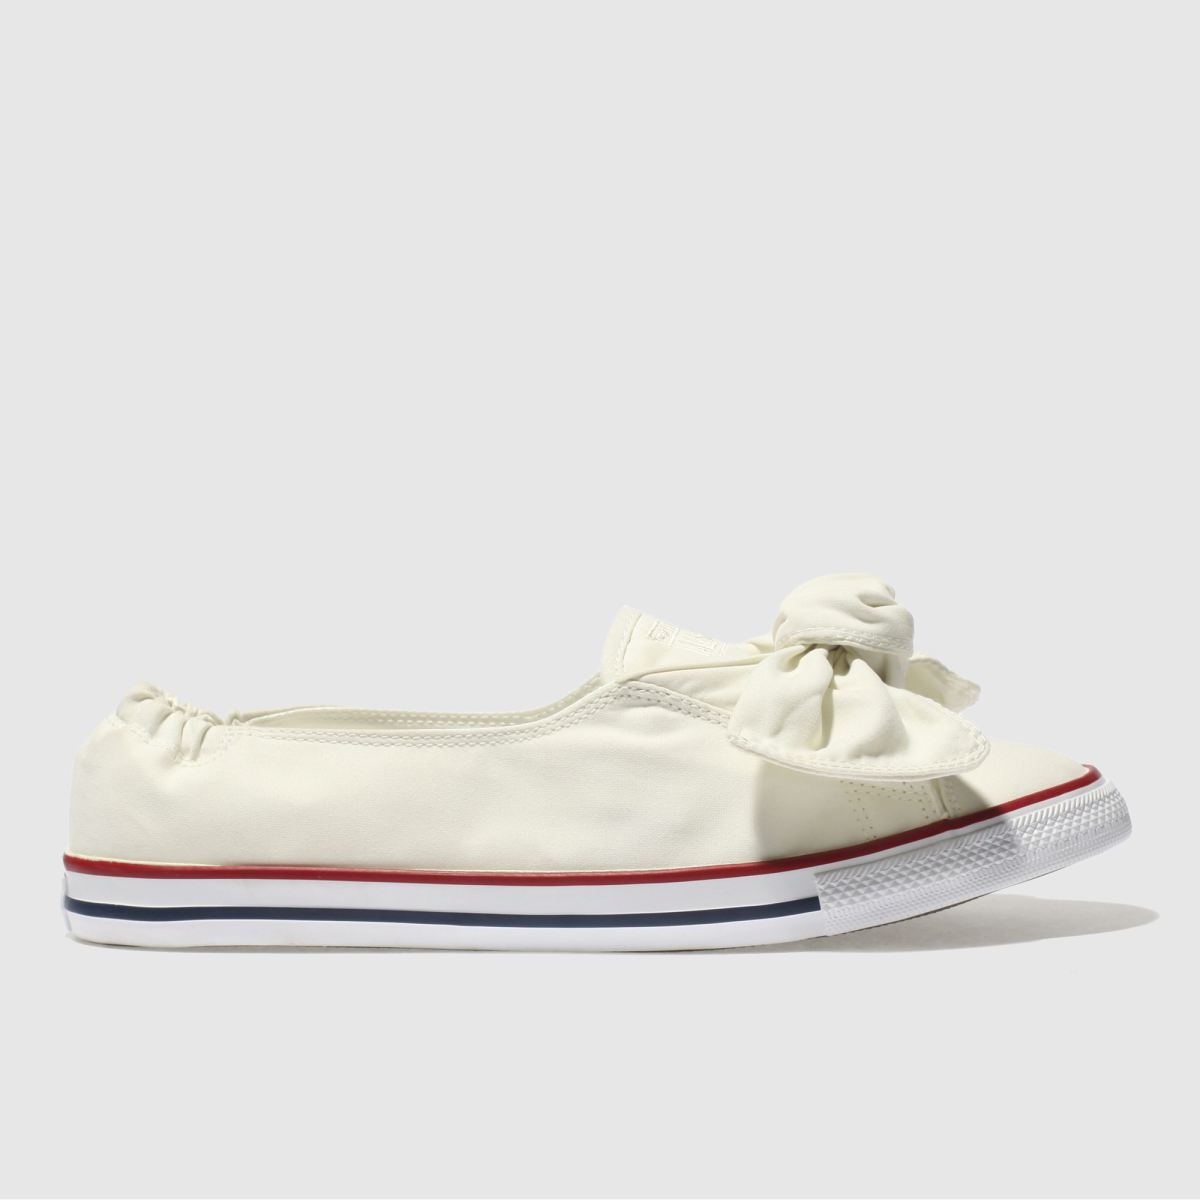 Converse Stone Chuck Taylor All Star Knot Ox Trainers